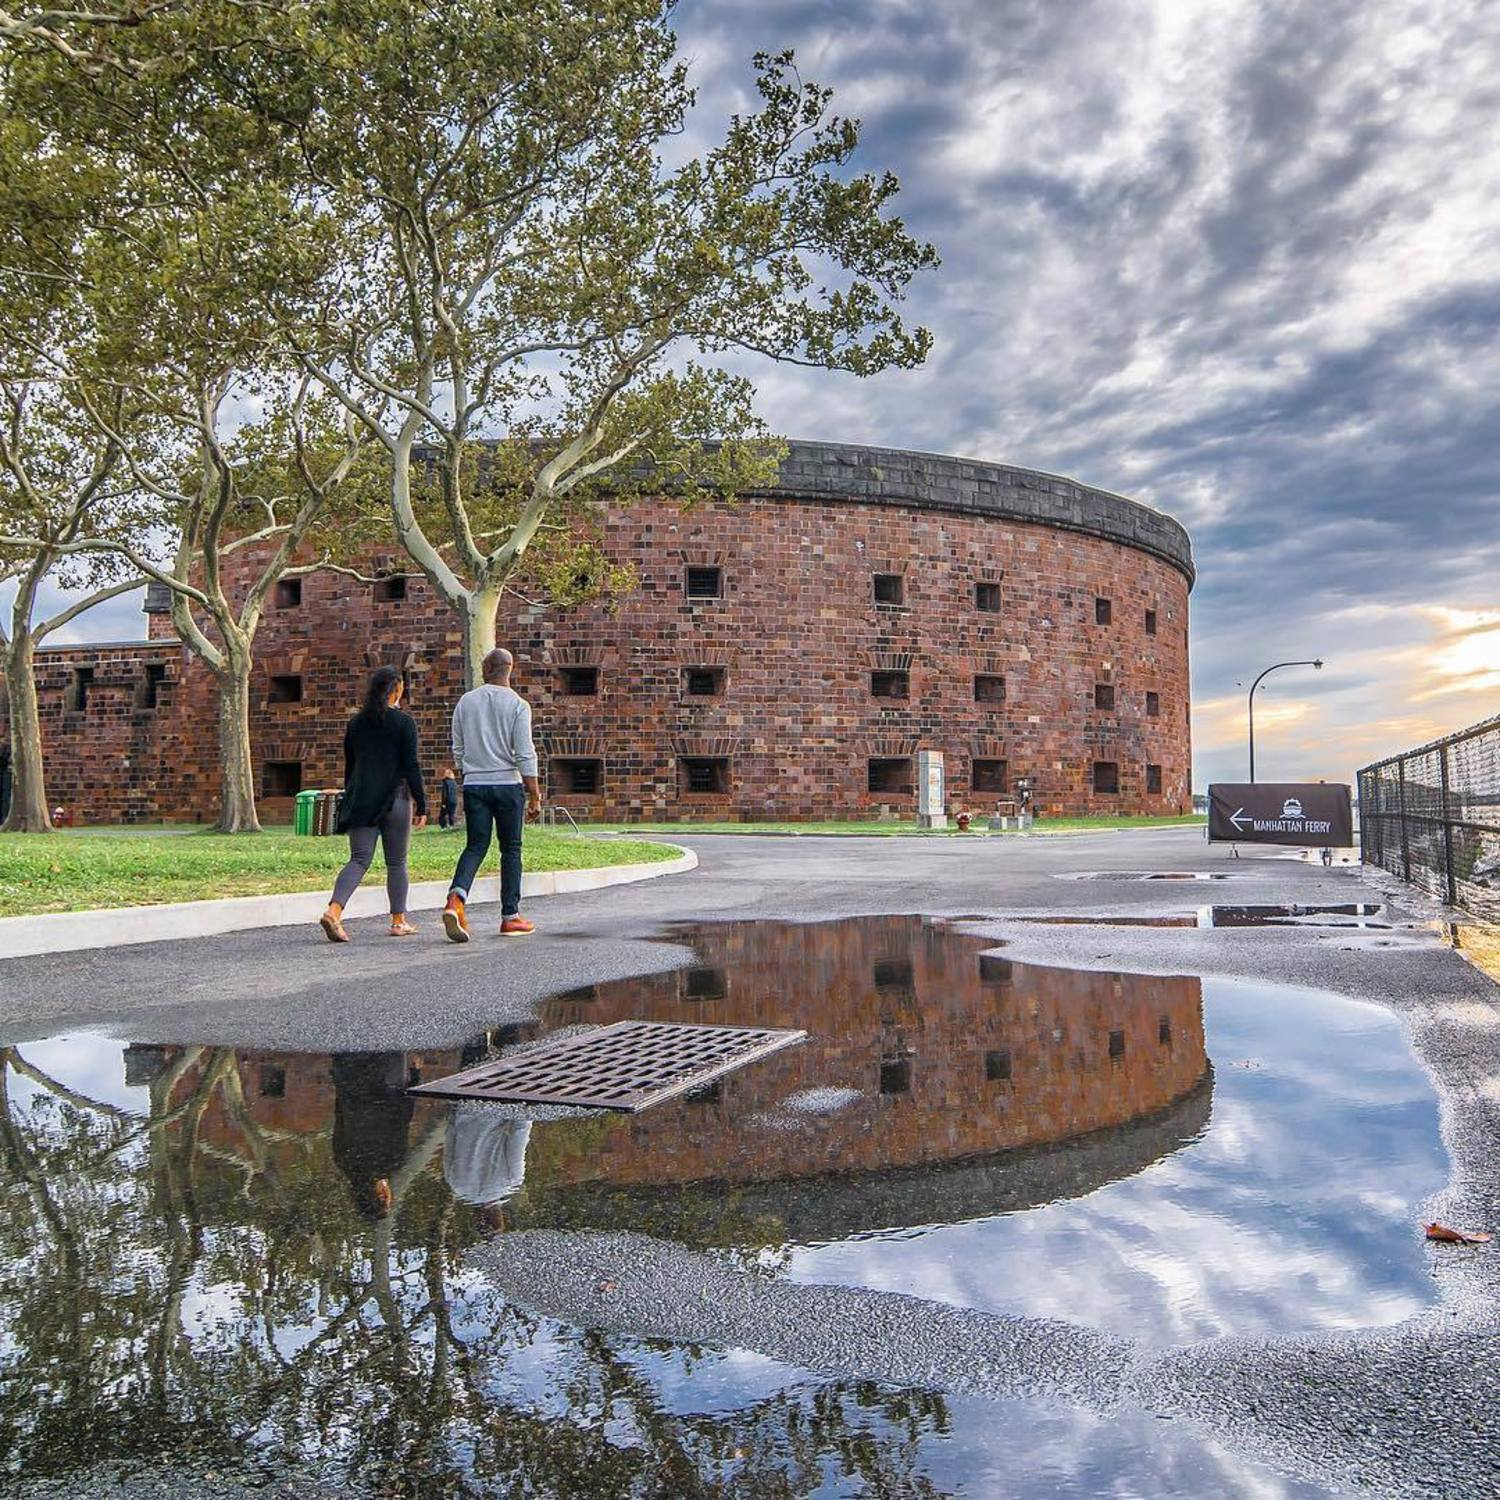 Castle Williams, a circular fortification of red sandstone on Governors Island. It is one of several forts built in the early 19th century to protect New York City from naval attack. Governors Island, New York City